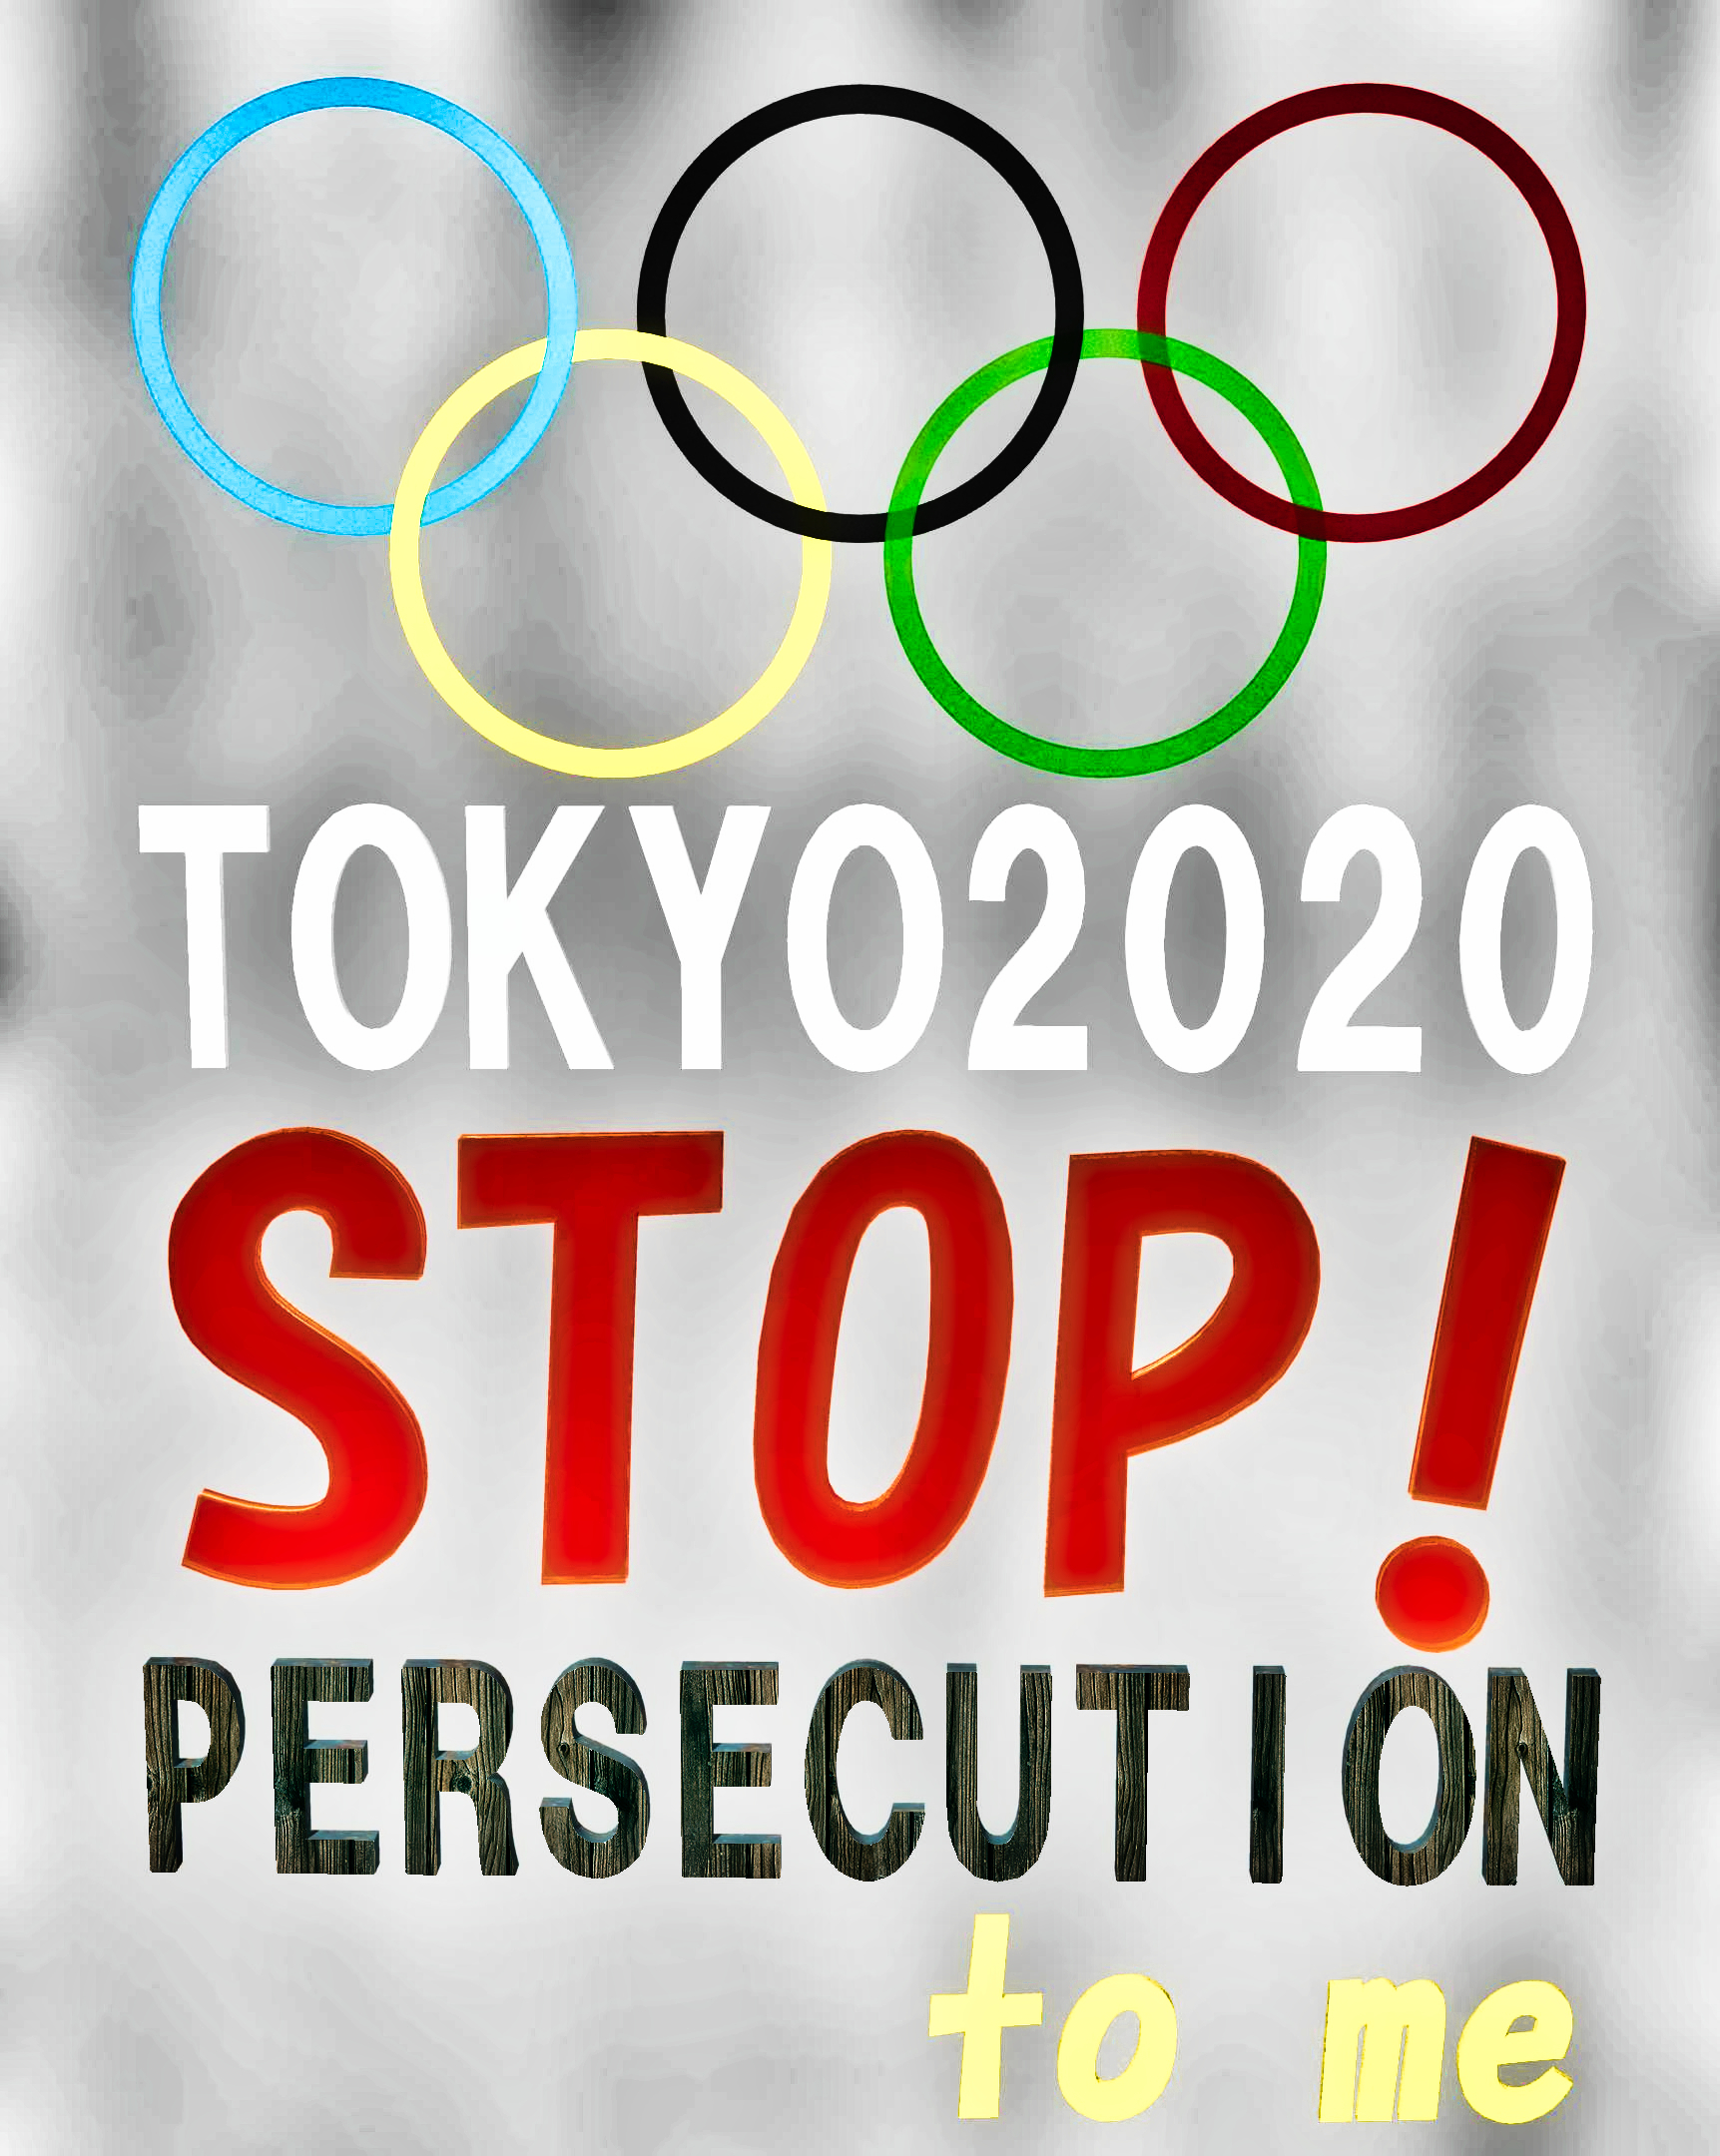 Stop! Persecution to me